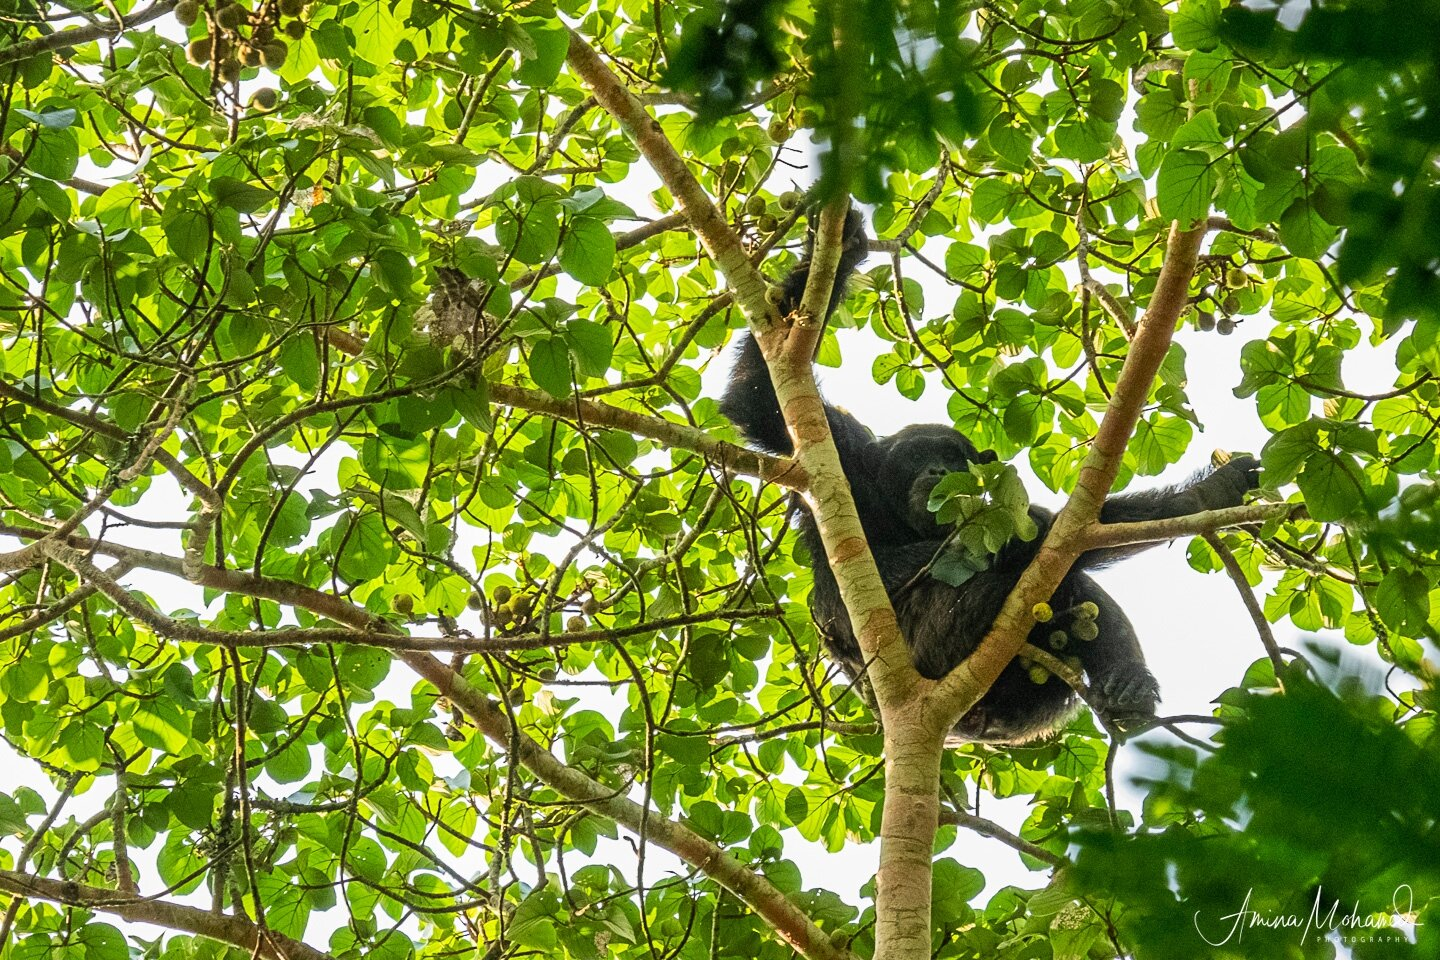 A male chimp looks down on us as we walk under the canopy of trees.  @Amina Mohamed Photography